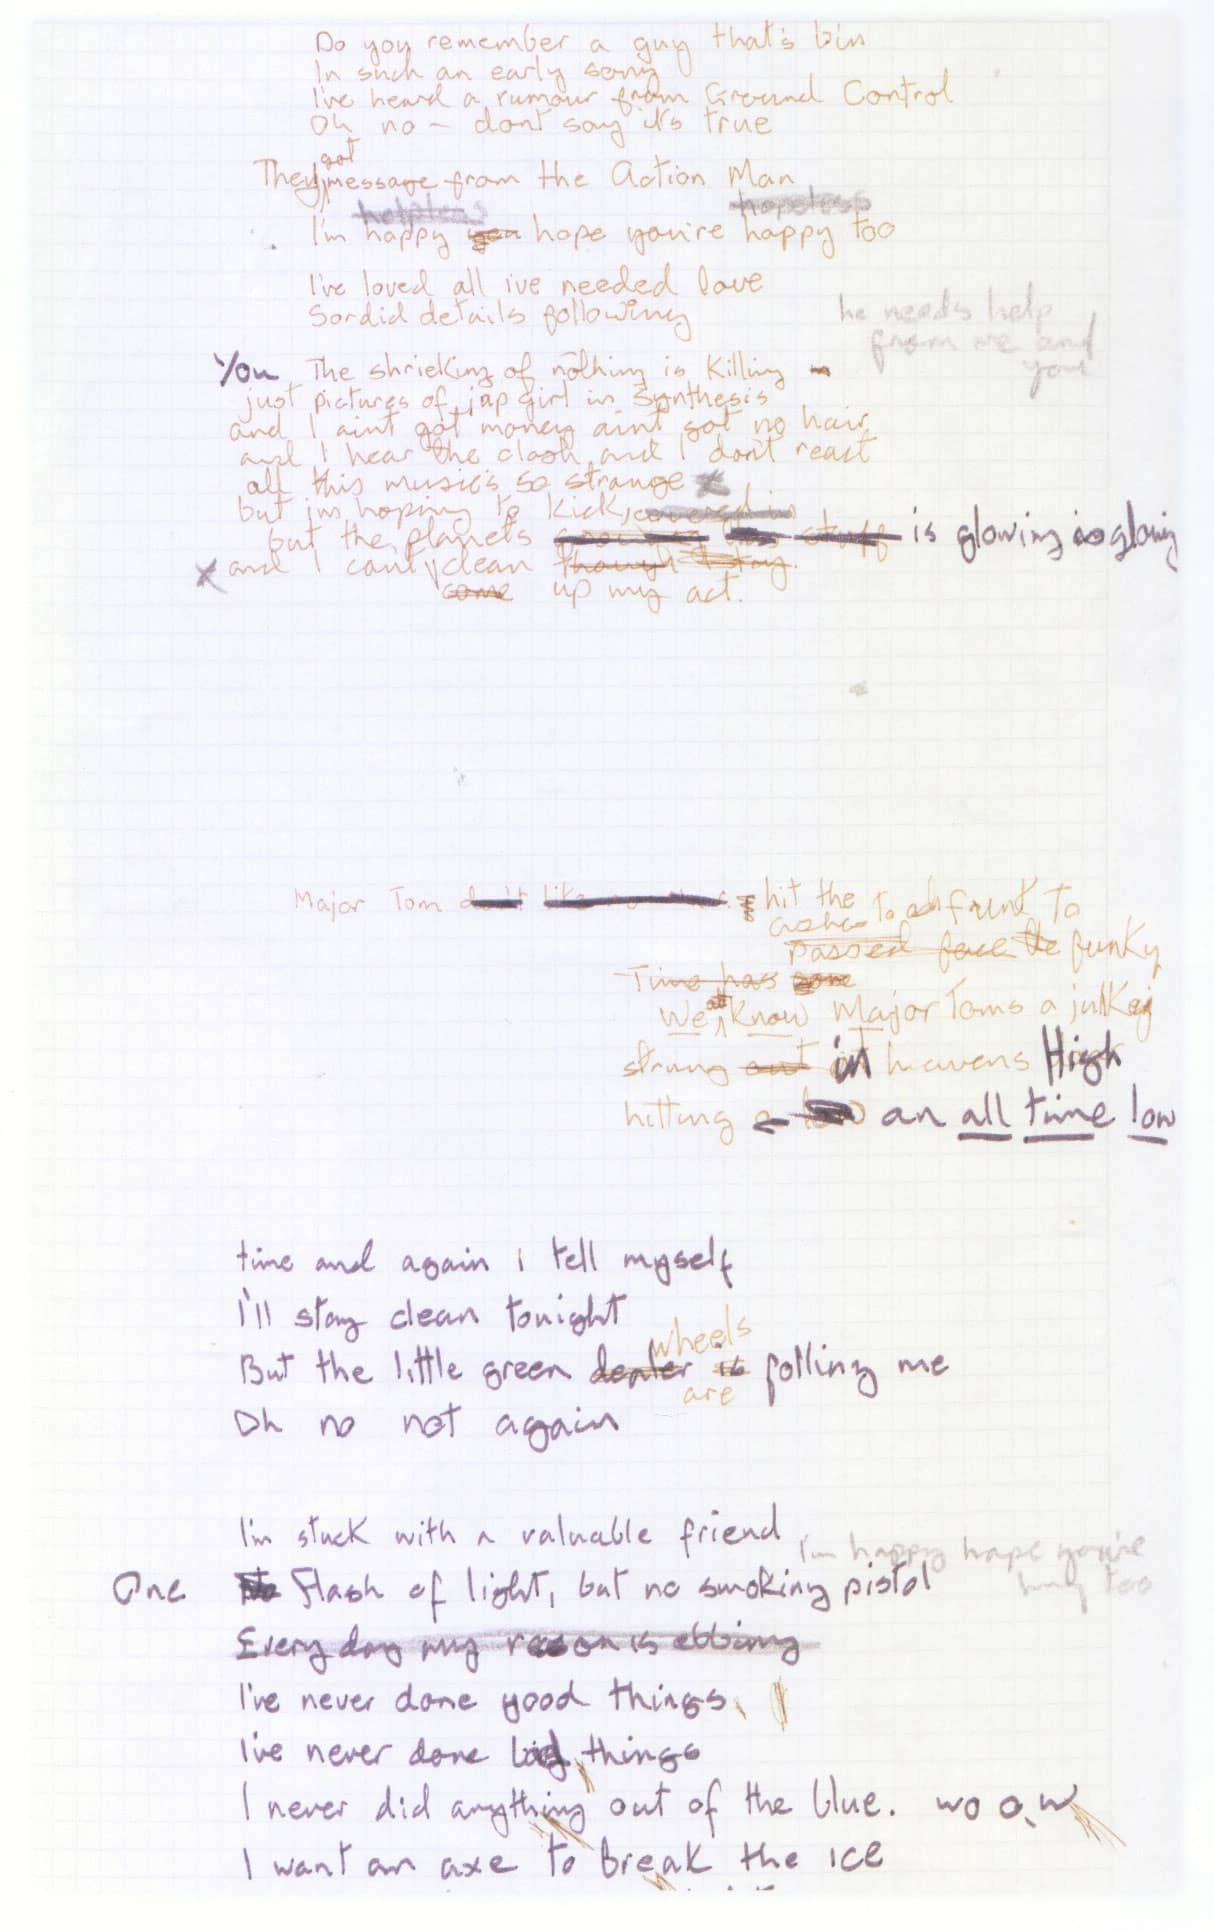 David Bowie's handwritten lyrics for Ashes To Ashes – The Bowie Bible